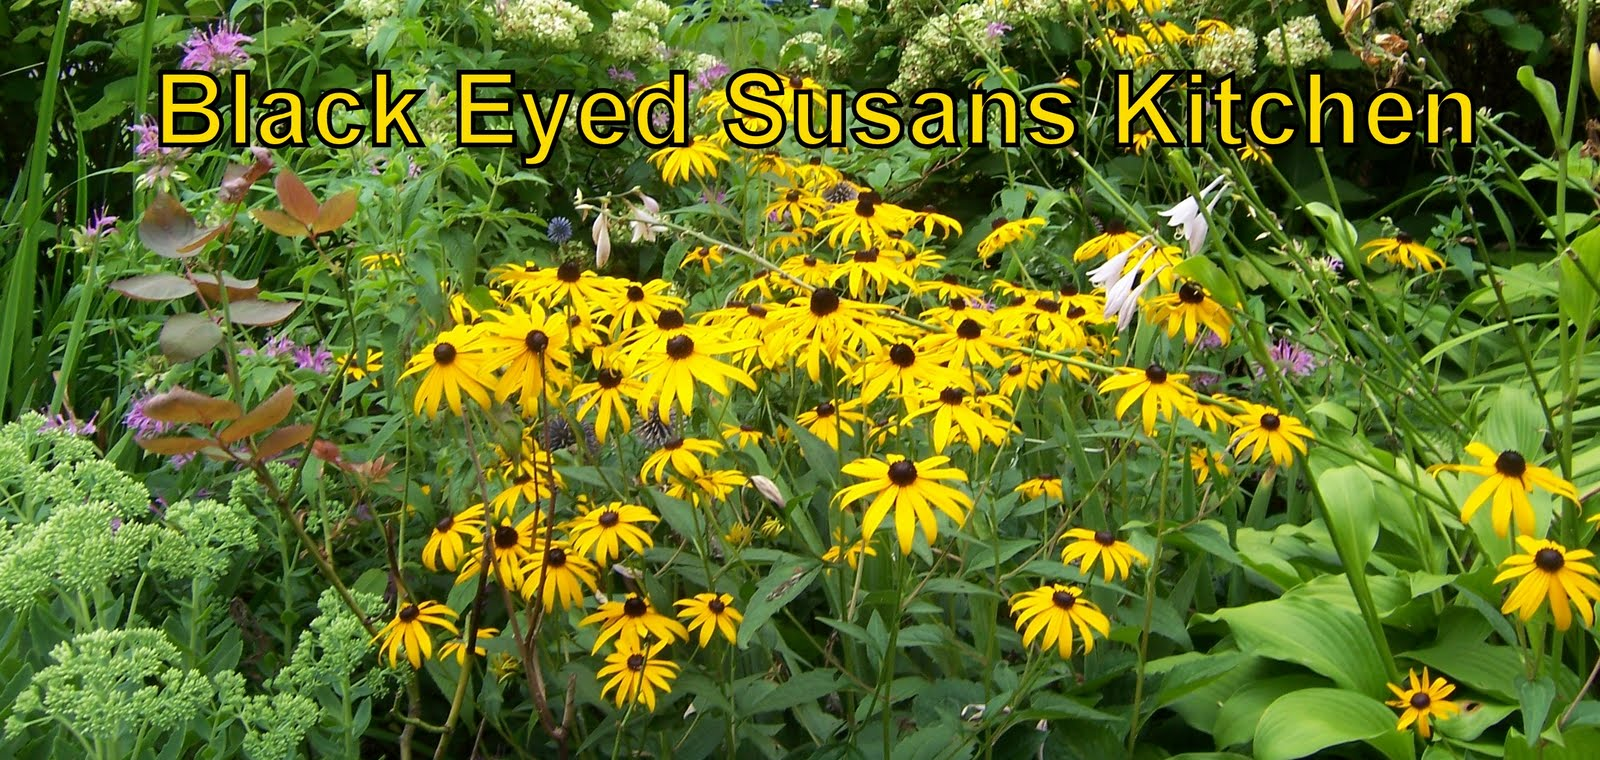 Black Eyed Susan's Kitchen